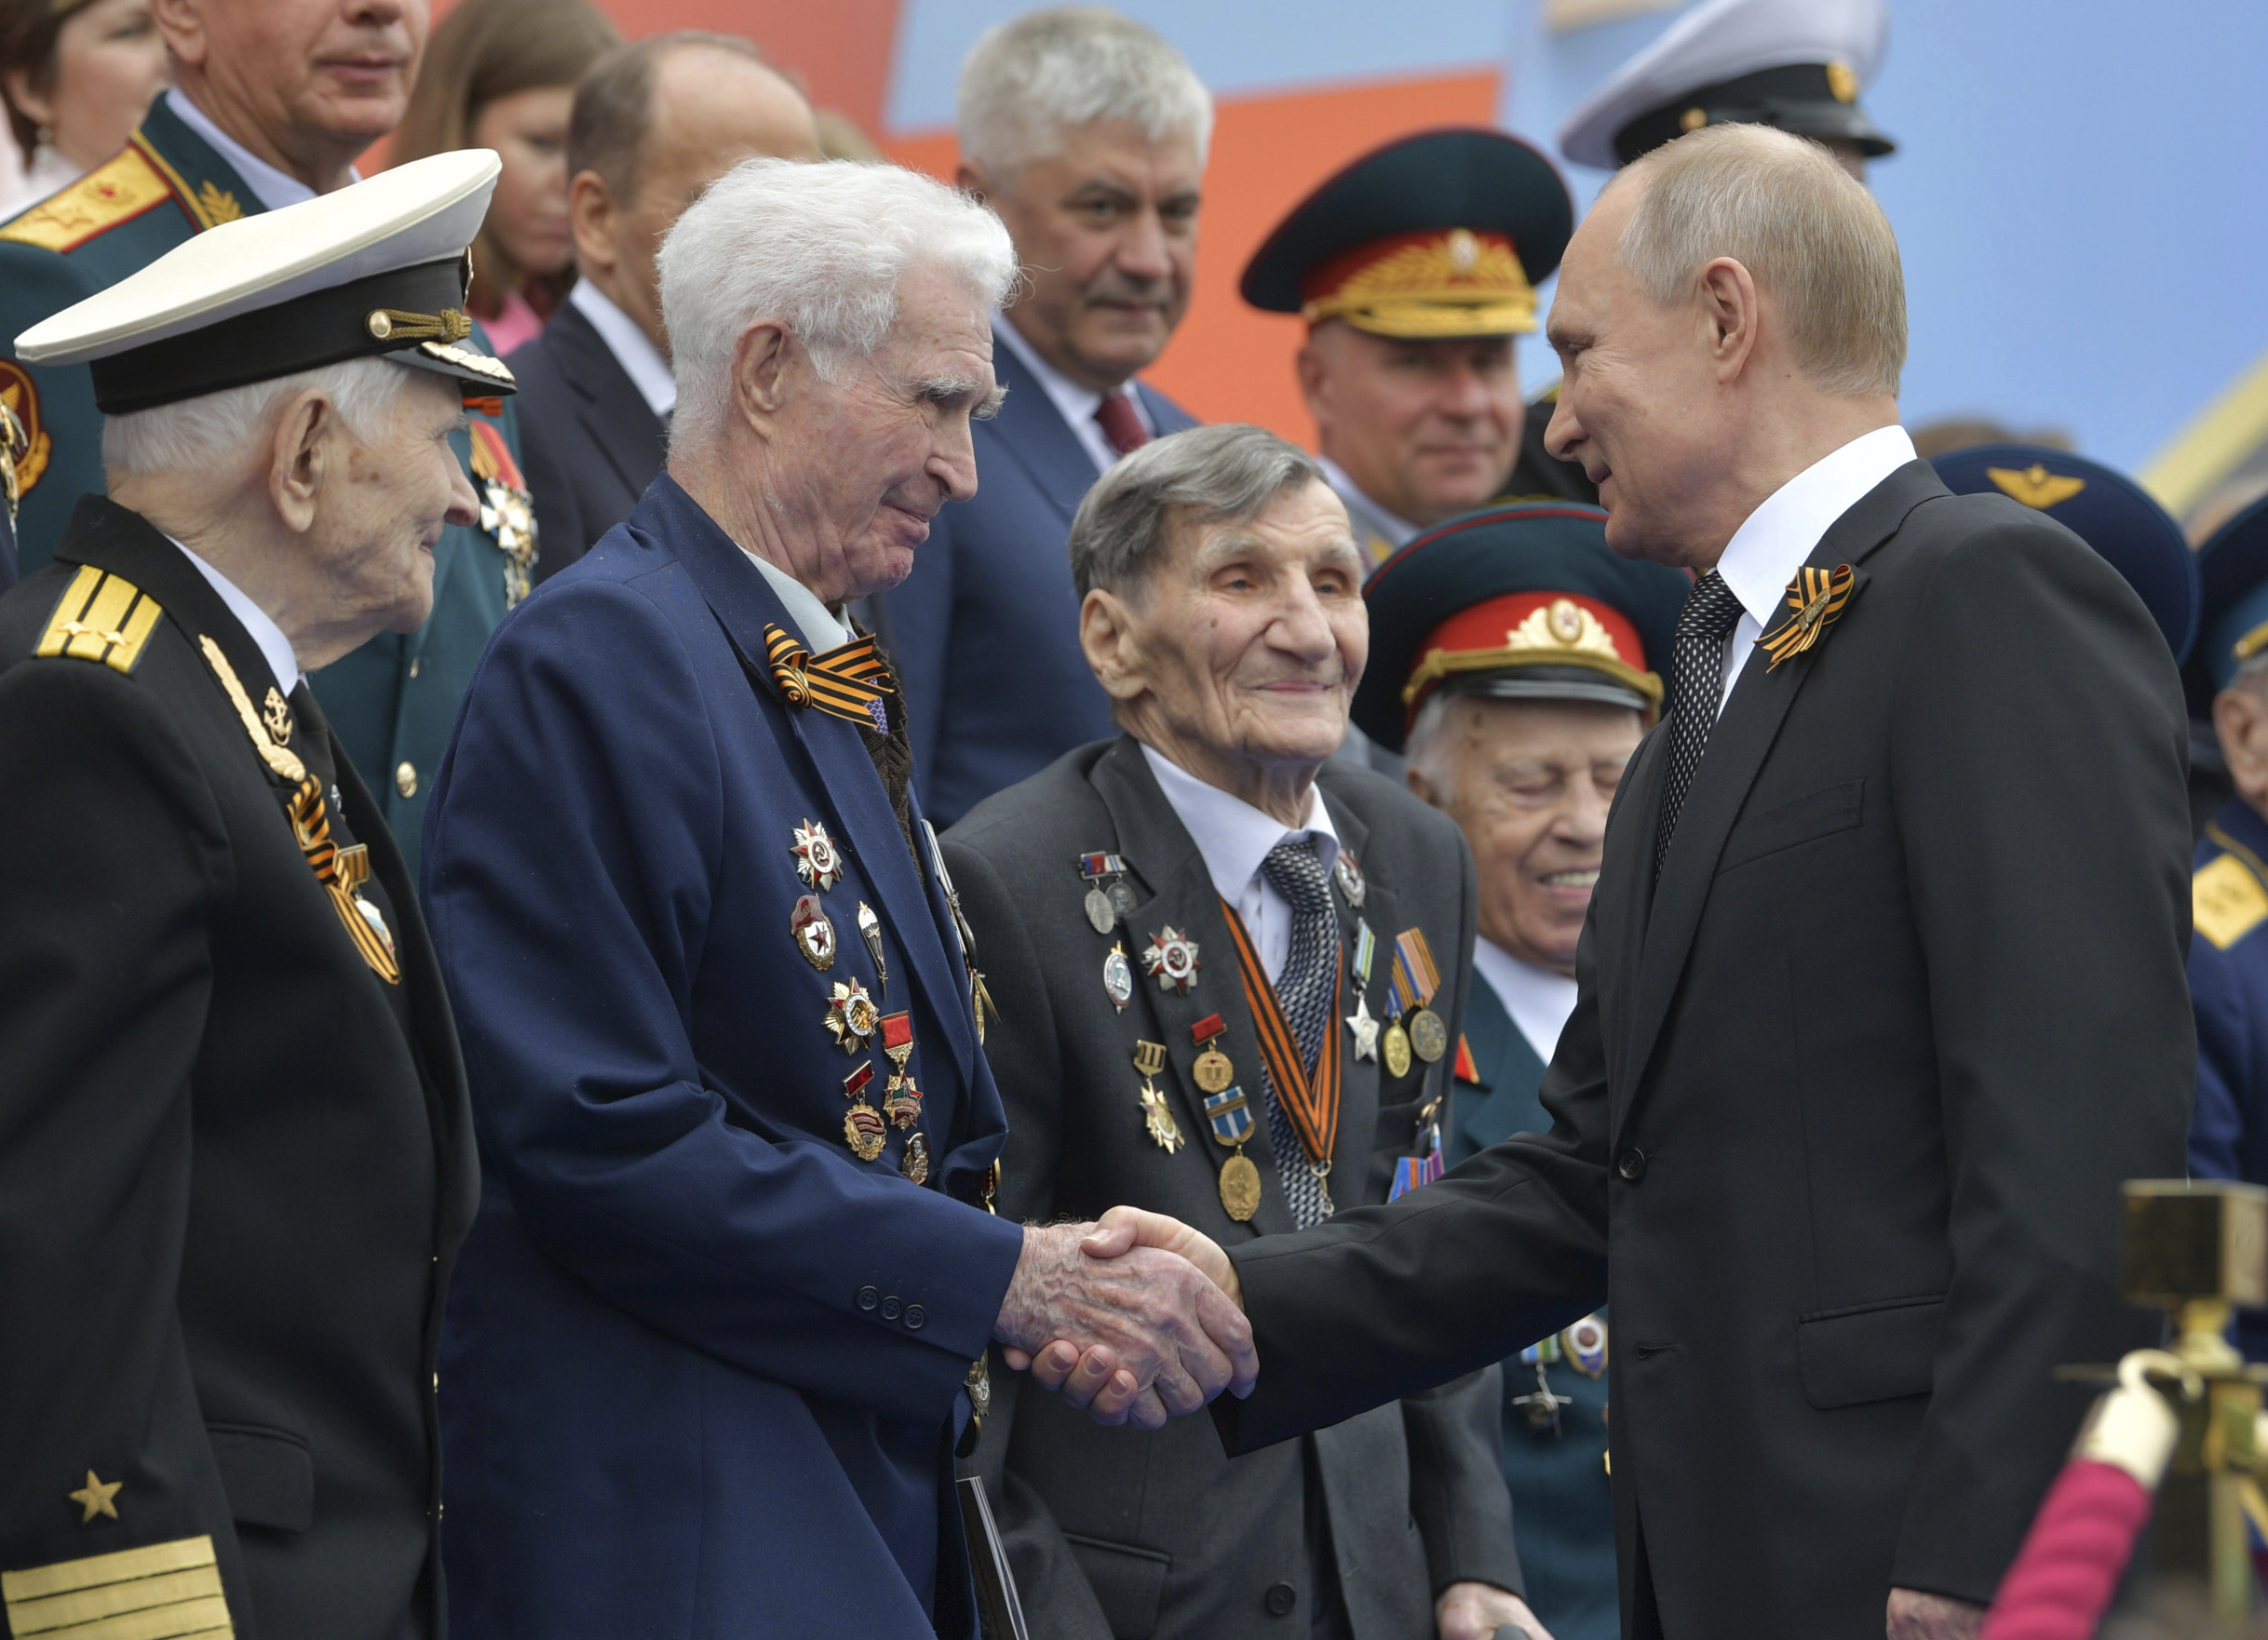 Russian President Vladimir Putin shakes hands with WWII veterans prior to a military parade marking 74 years since the victory in WWII in Red Square in Moscow, Russia, Thursday, May 9, 2019. (Alexei Druzhinin, Sputnik, Kremlin Pool Photo via AP)